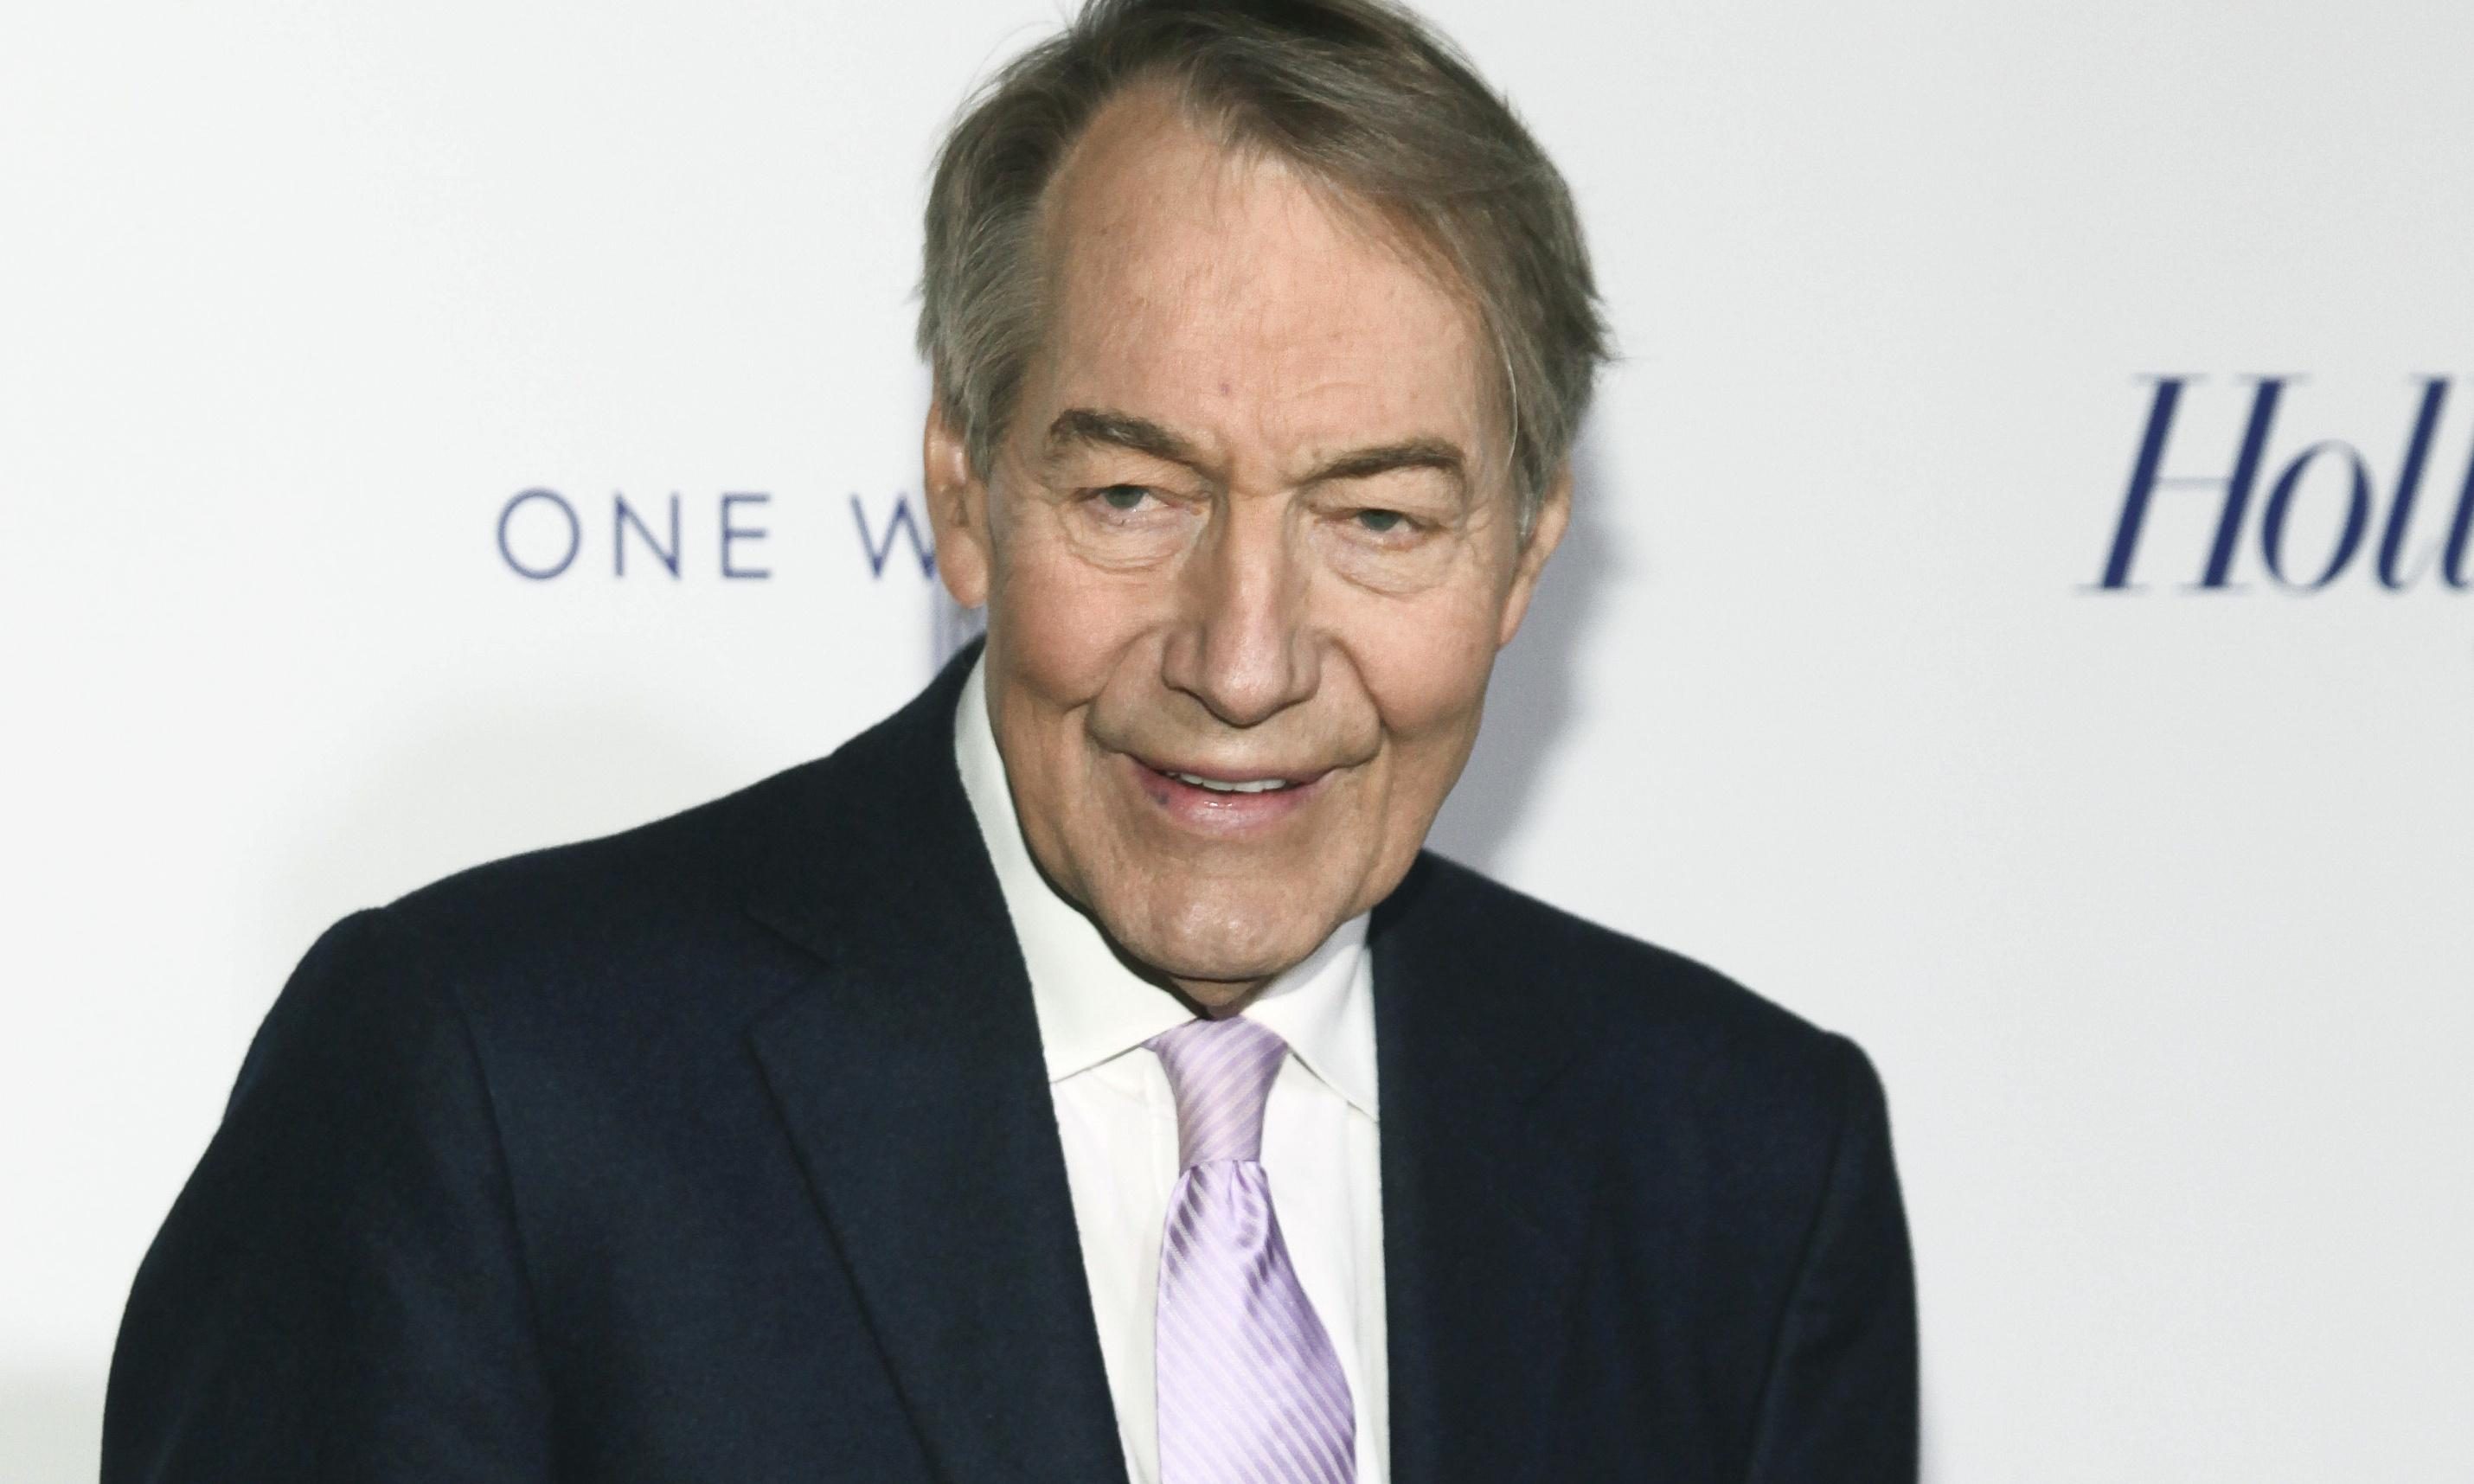 Charlie Rose turned studio into a 'sexual hunting ground', new lawsuit alleges